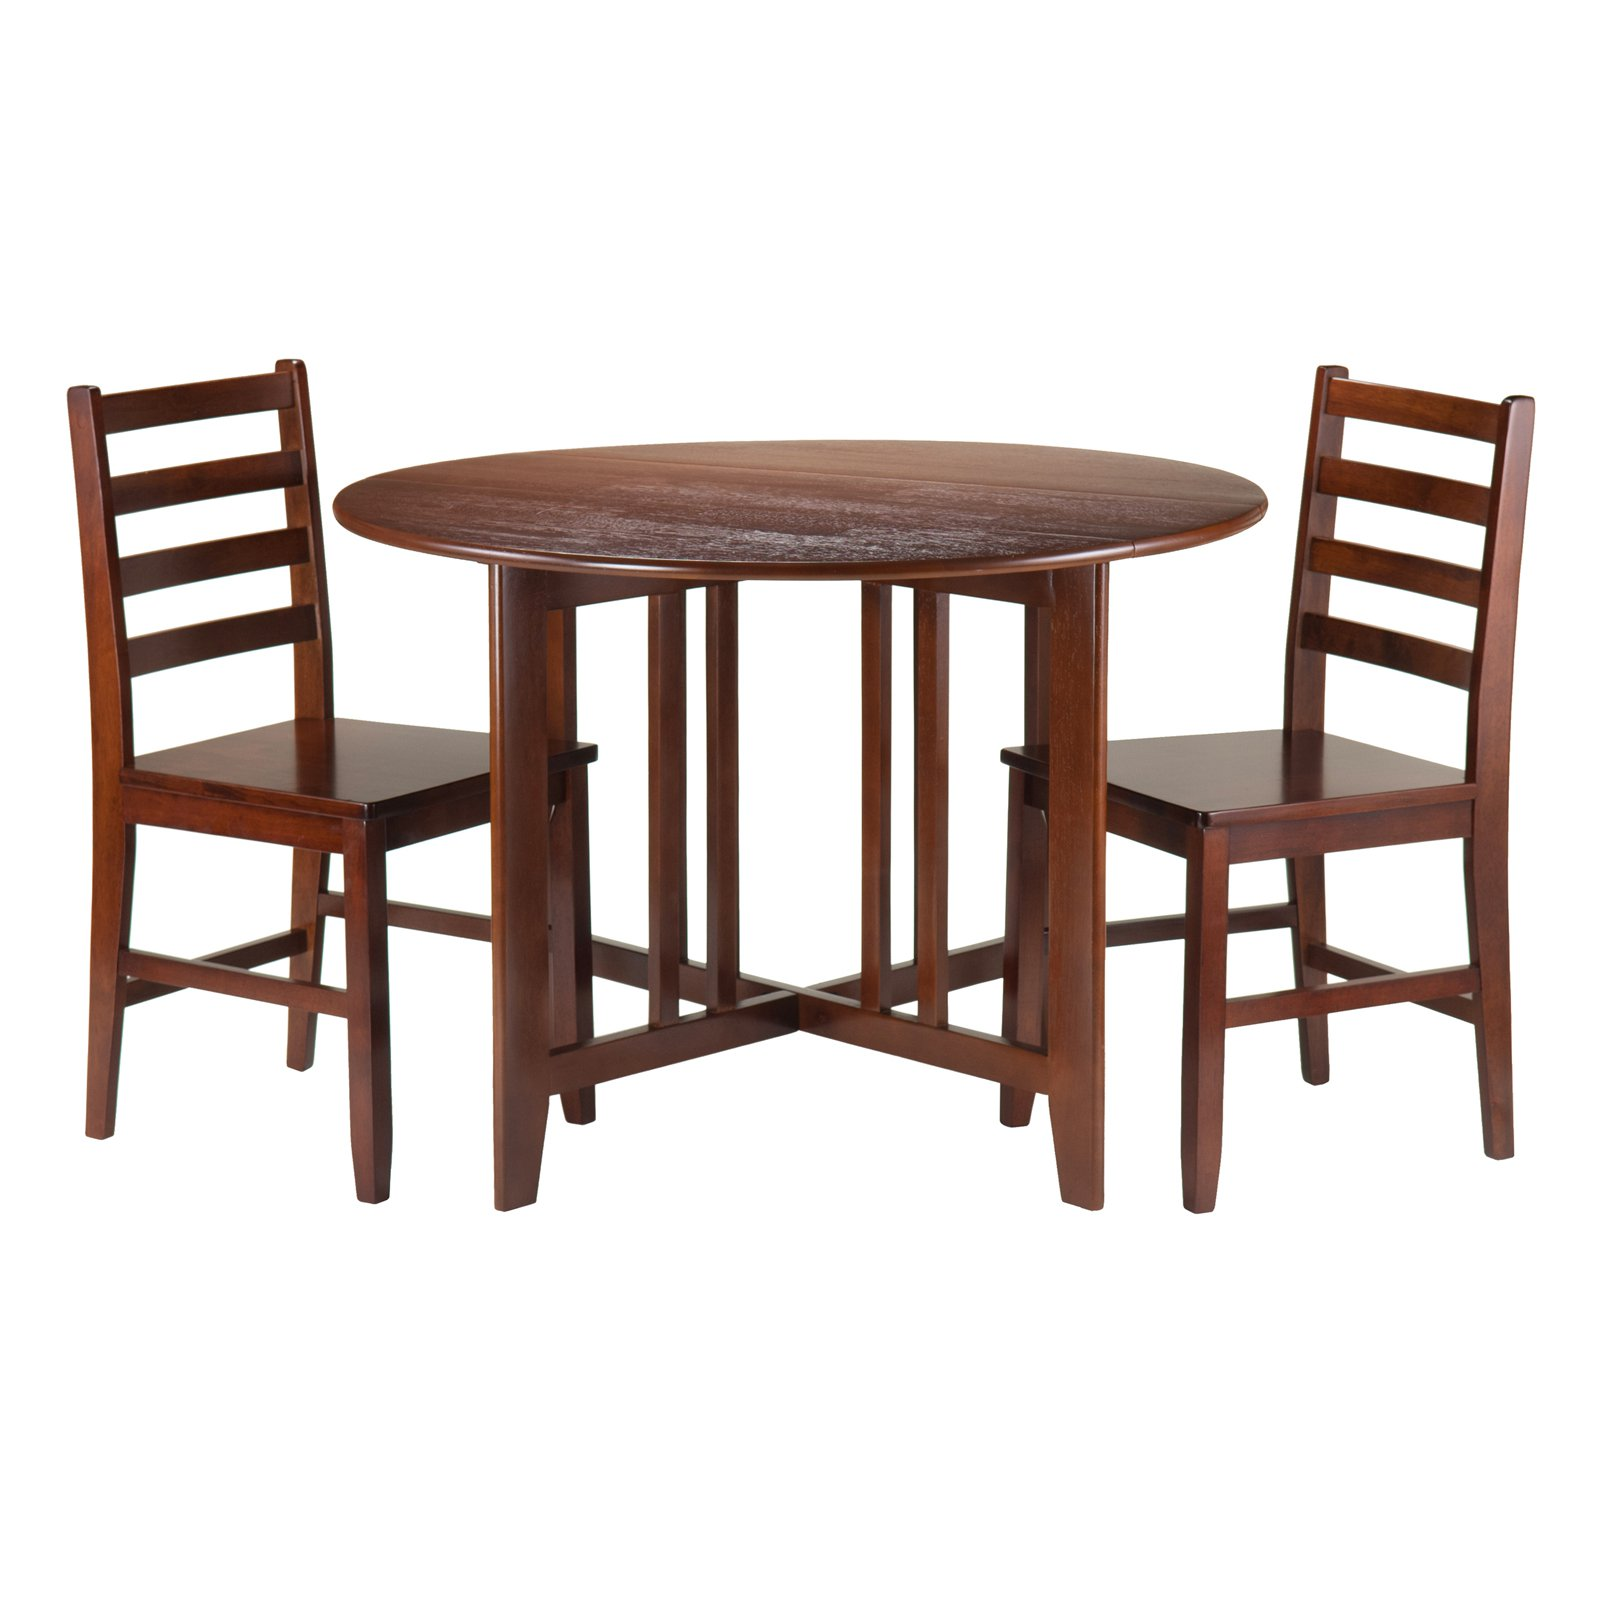 modern table ideas pleasant small drop leaf target with opinion accent refer good looking patio furniture calgary trestle leaves ott tray mirror dining folding chairs cool bar